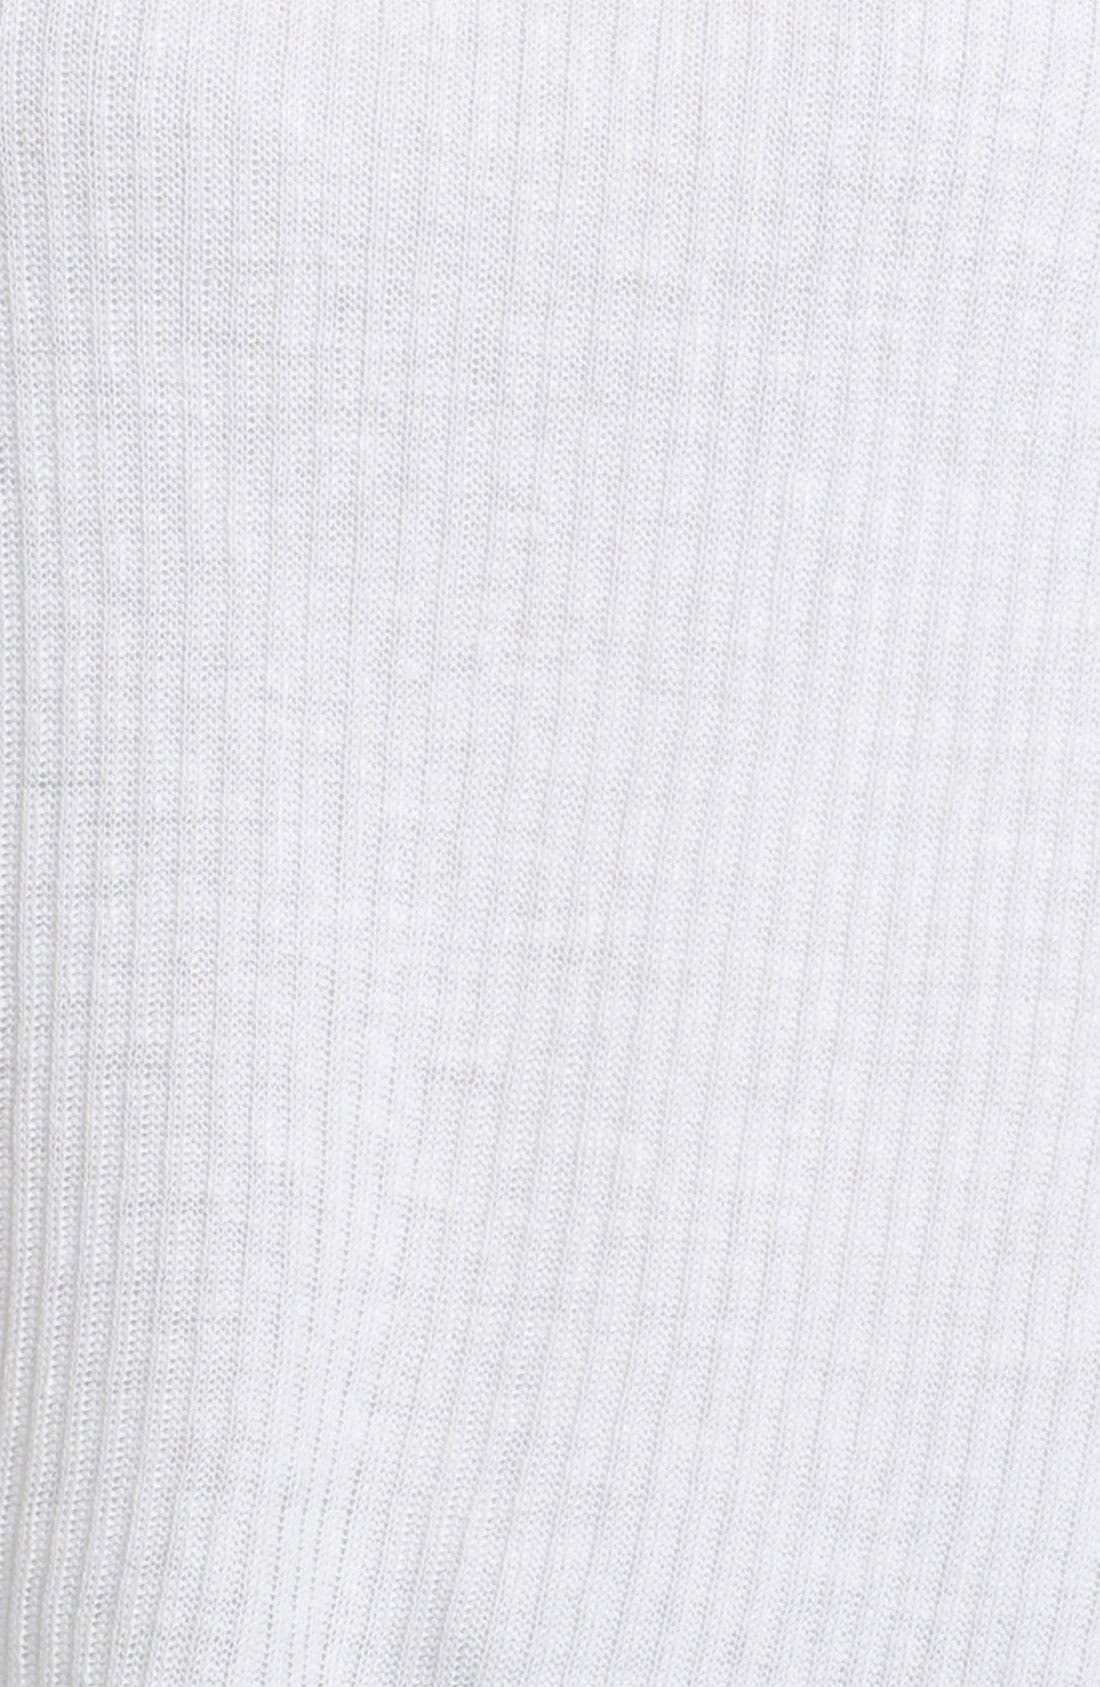 Alternate Image 3  - Eileen Fisher Ribbed Linen Top (Petite)